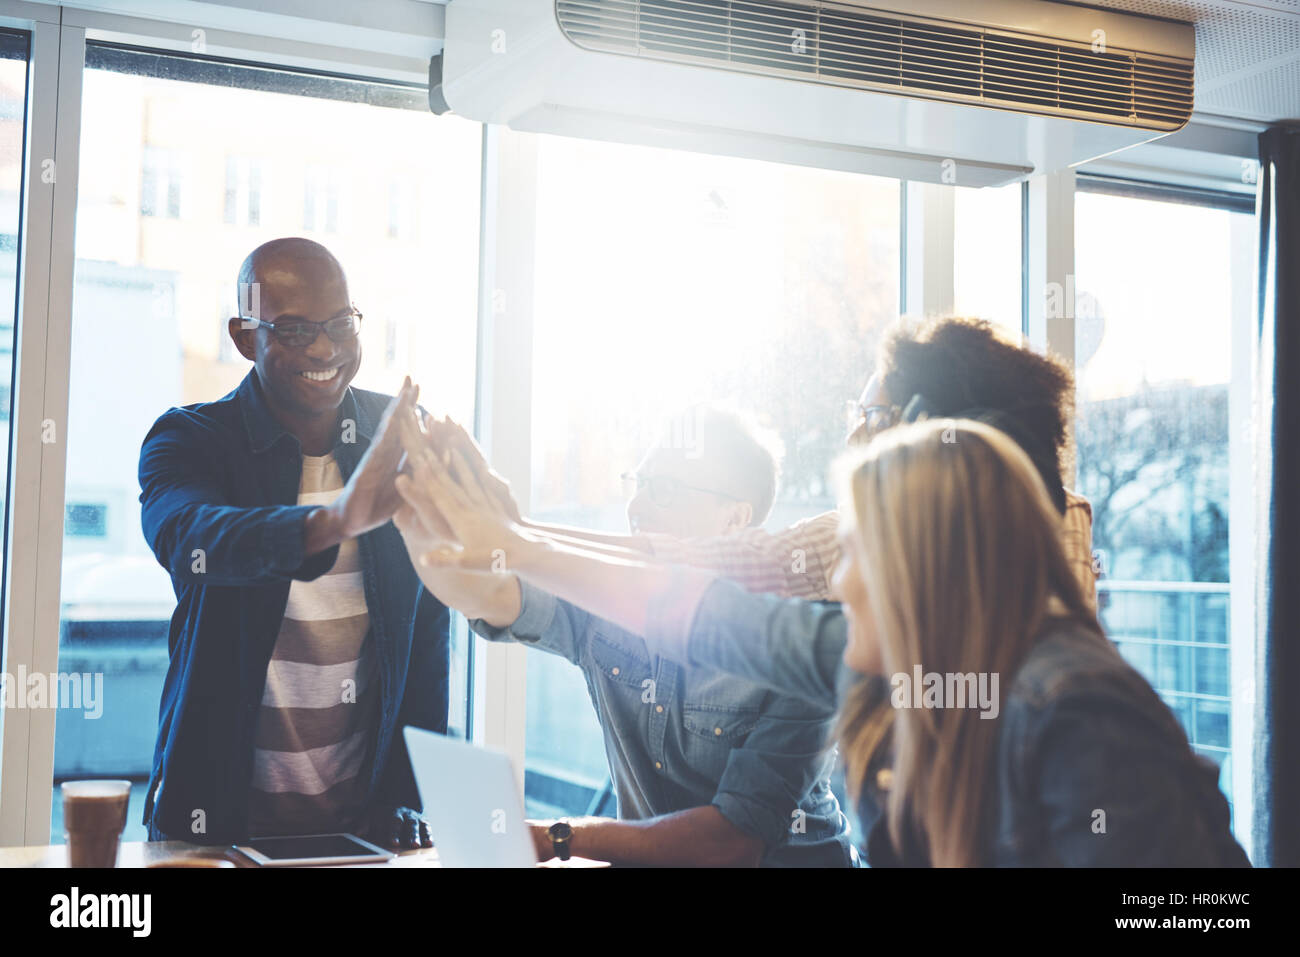 Young people in casual clothes giving high fives to each other as if celebrating something, against bright window Stock Photo